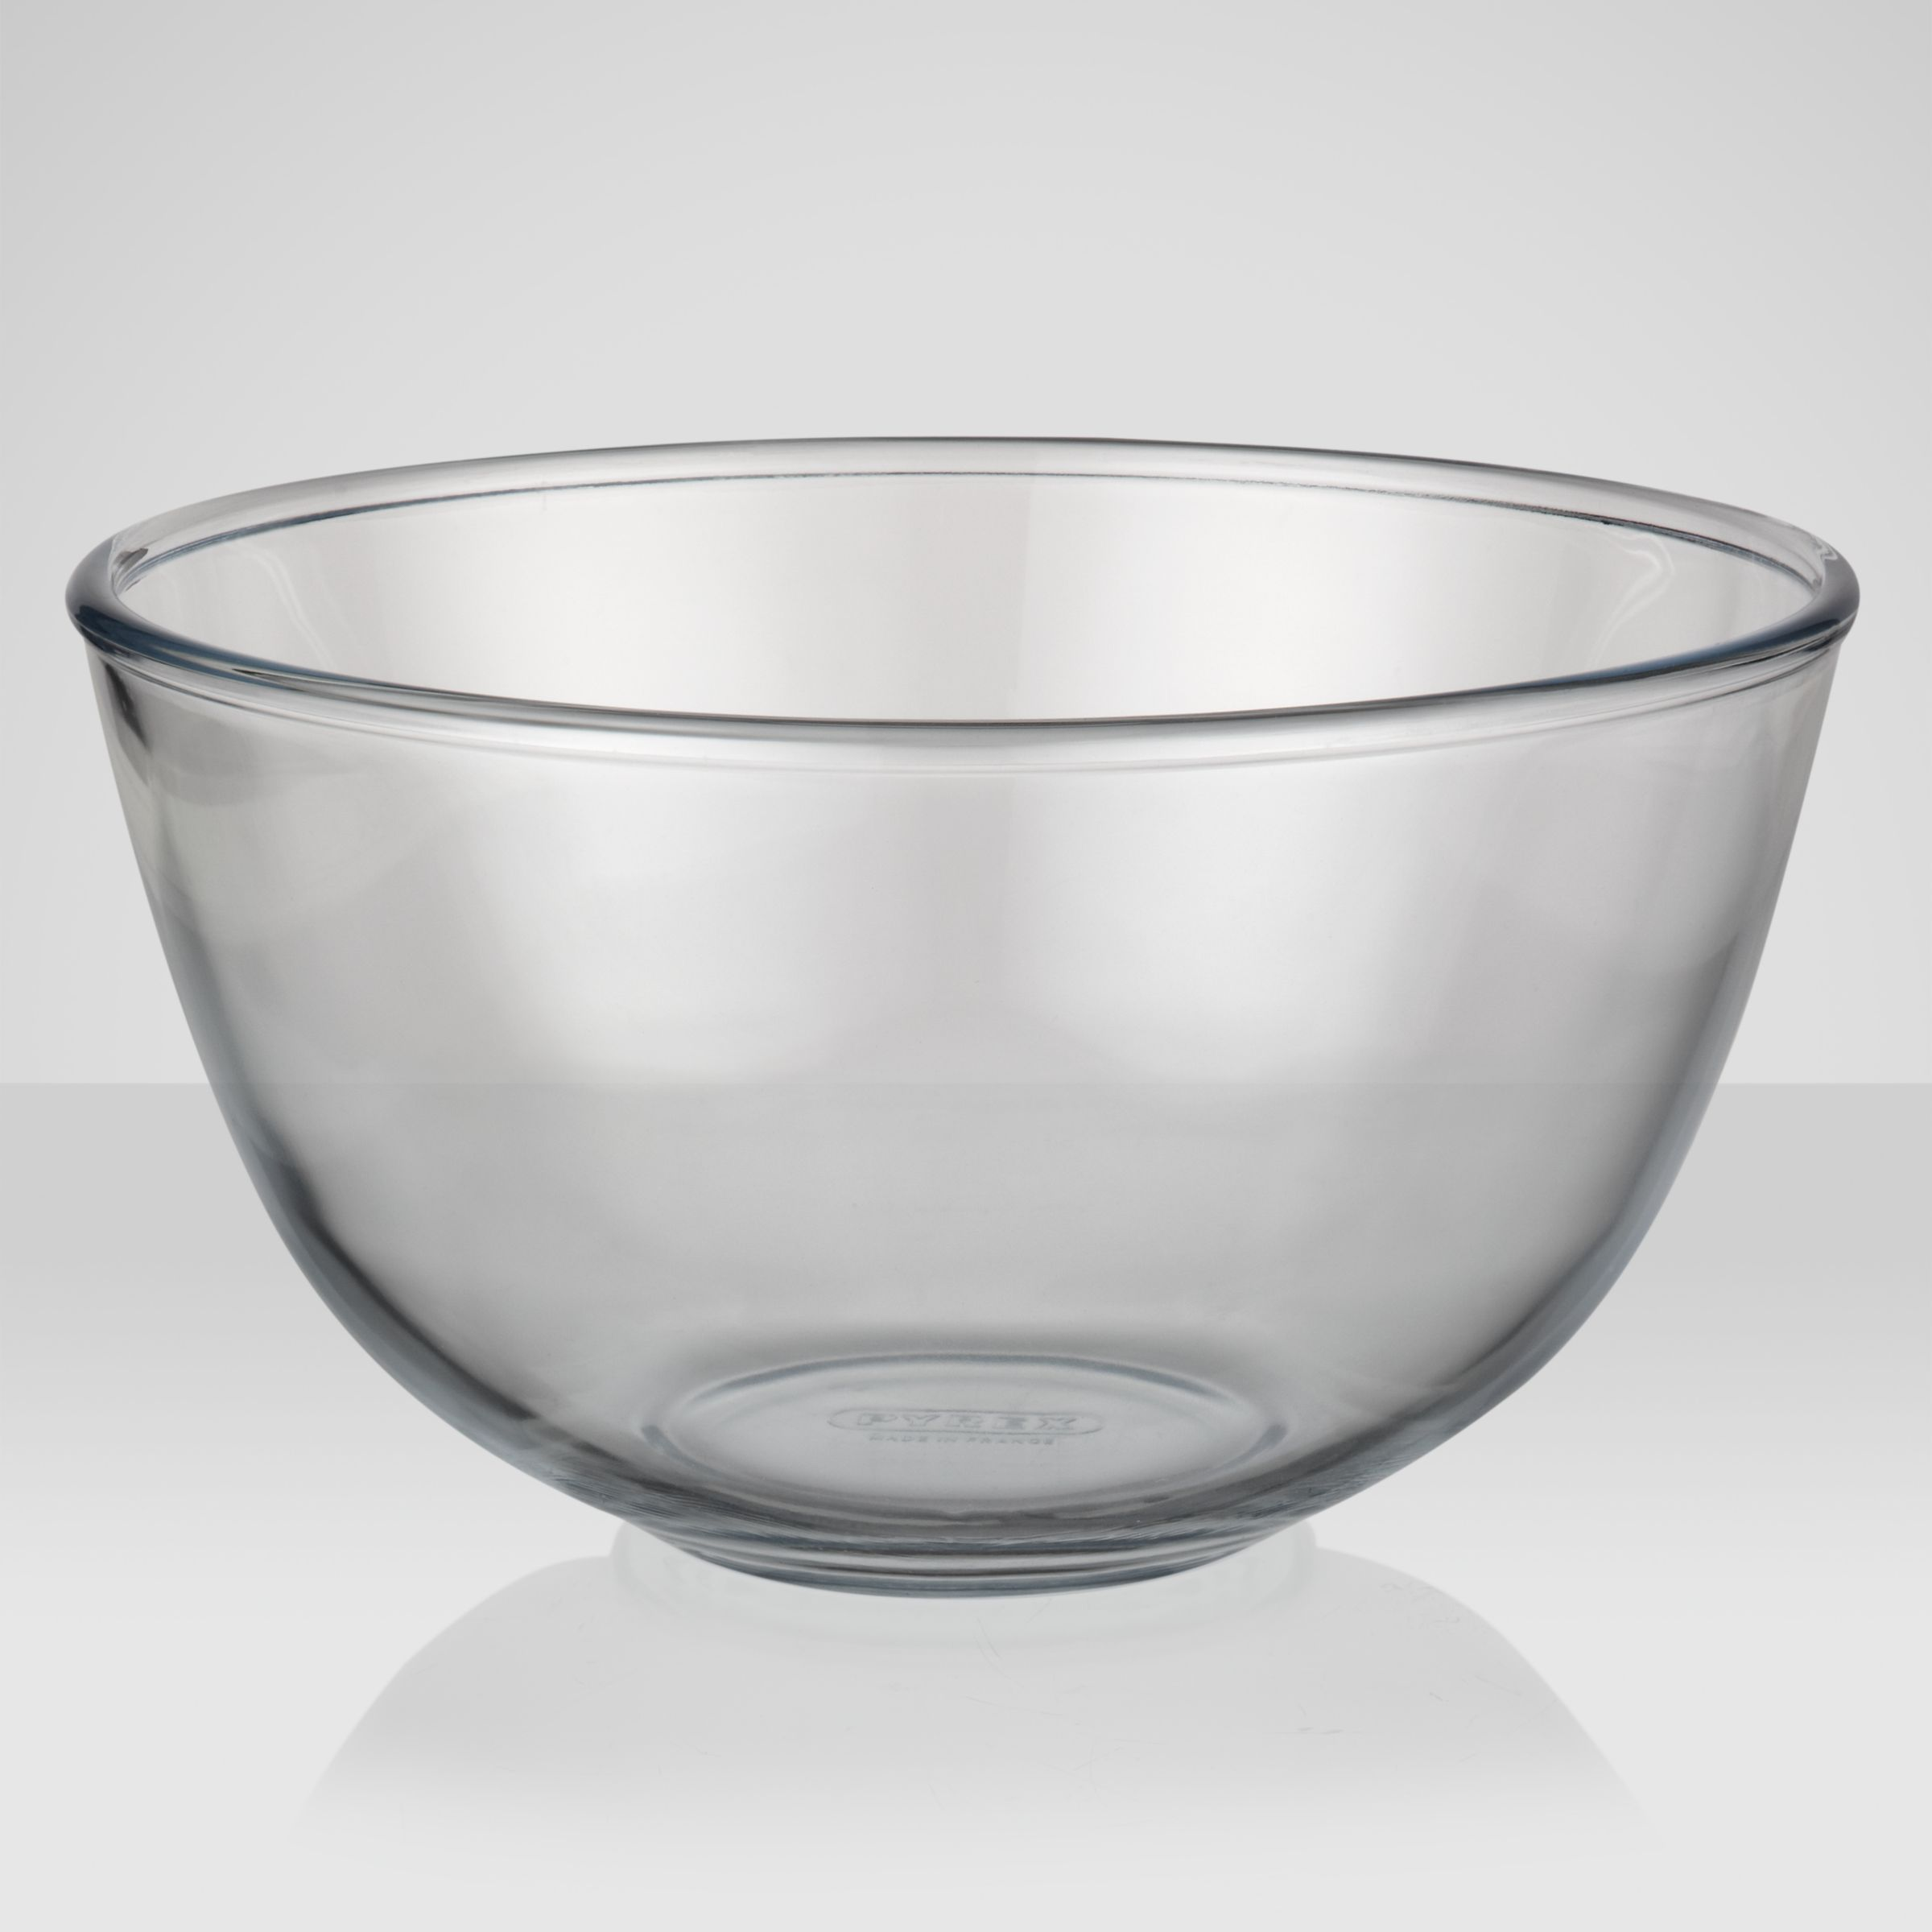 Pyrex Pyrex Glass Mixing Bowl